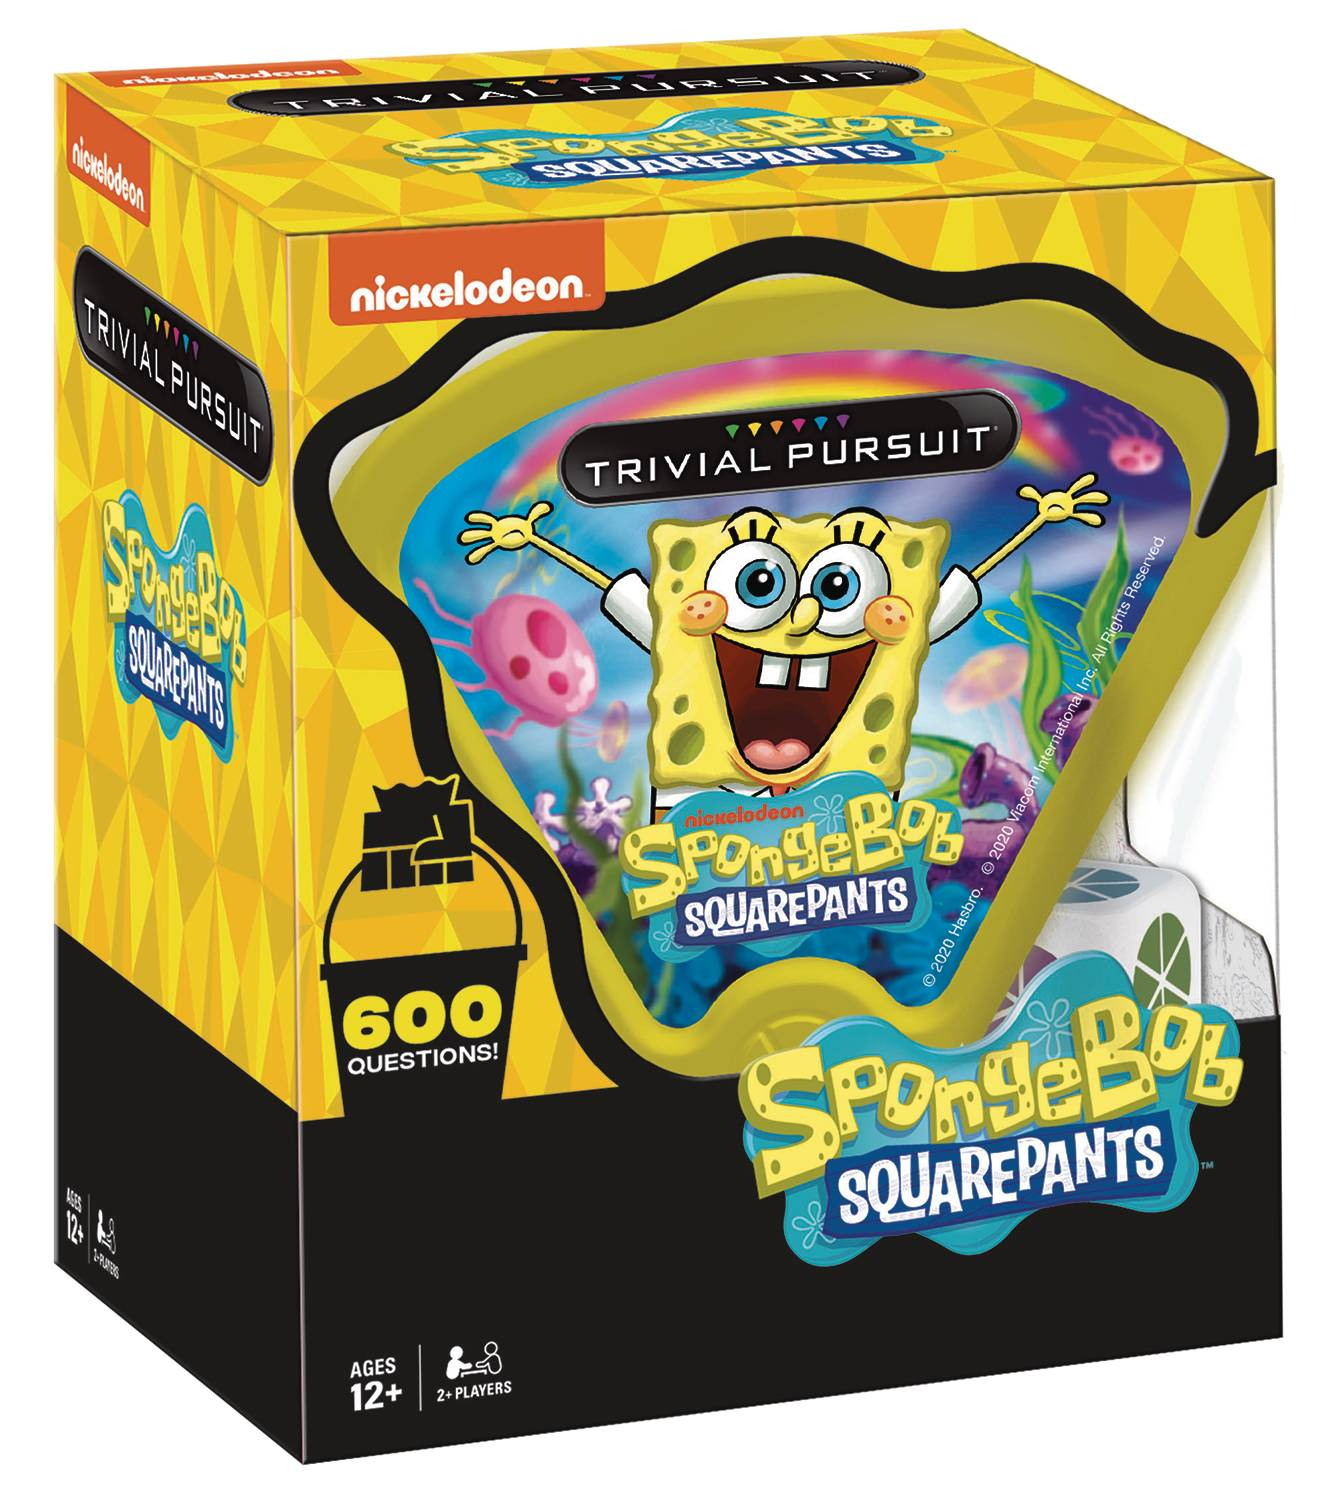 TRIVIAL PURSUIT SPONGEBOB BOARDGAME